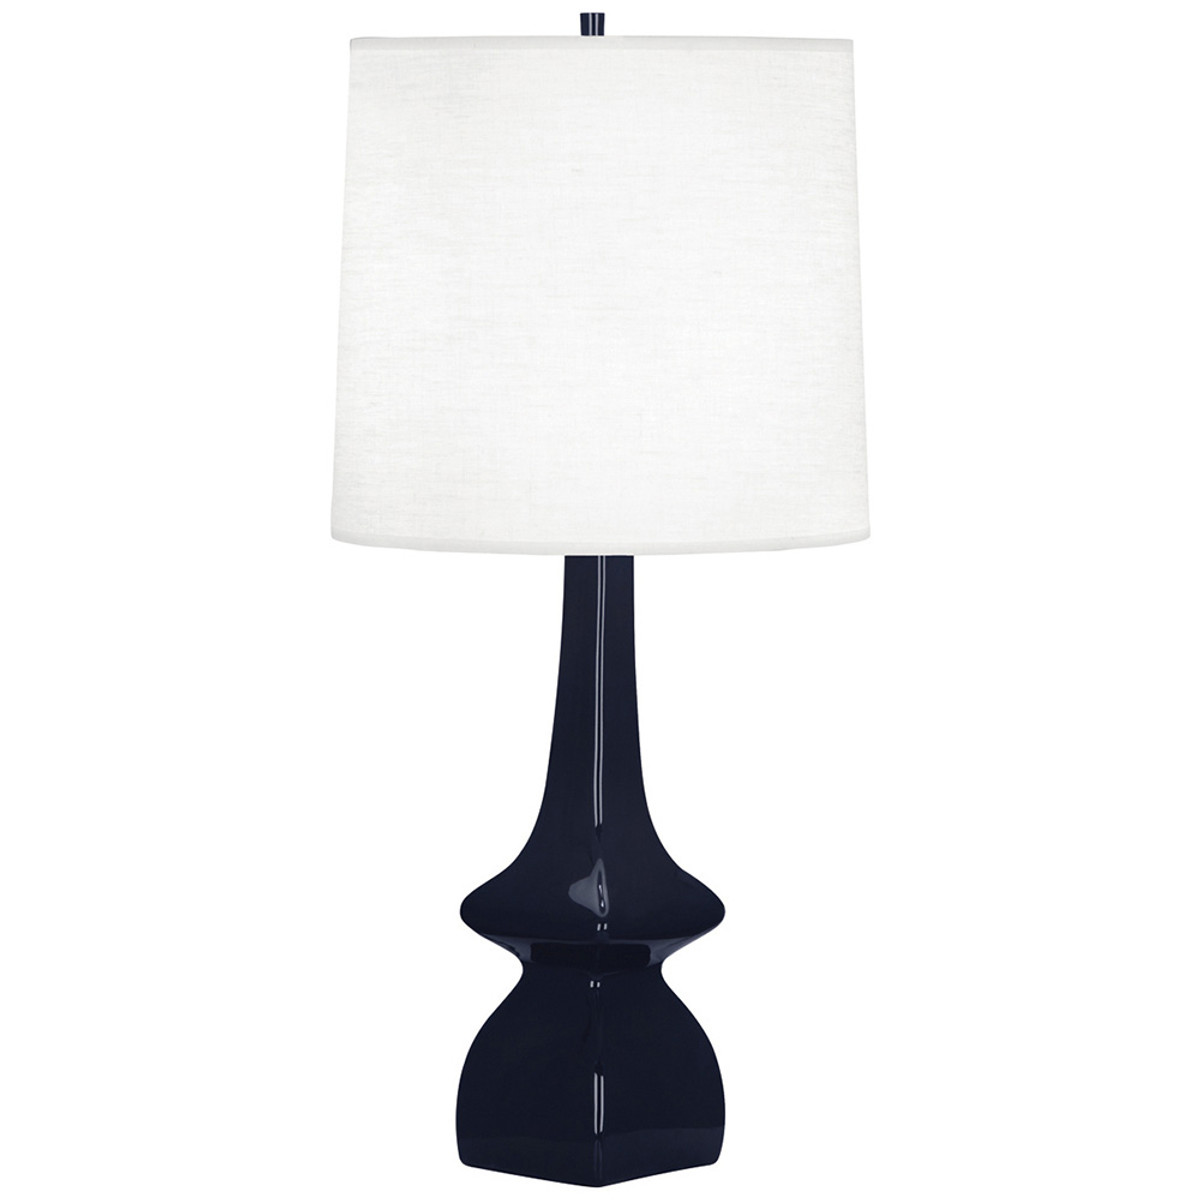 Buy The Jasmine Table Lamp By Robert Abbey Price Match Guarantee Free Shipping On All Orders From Lightopia